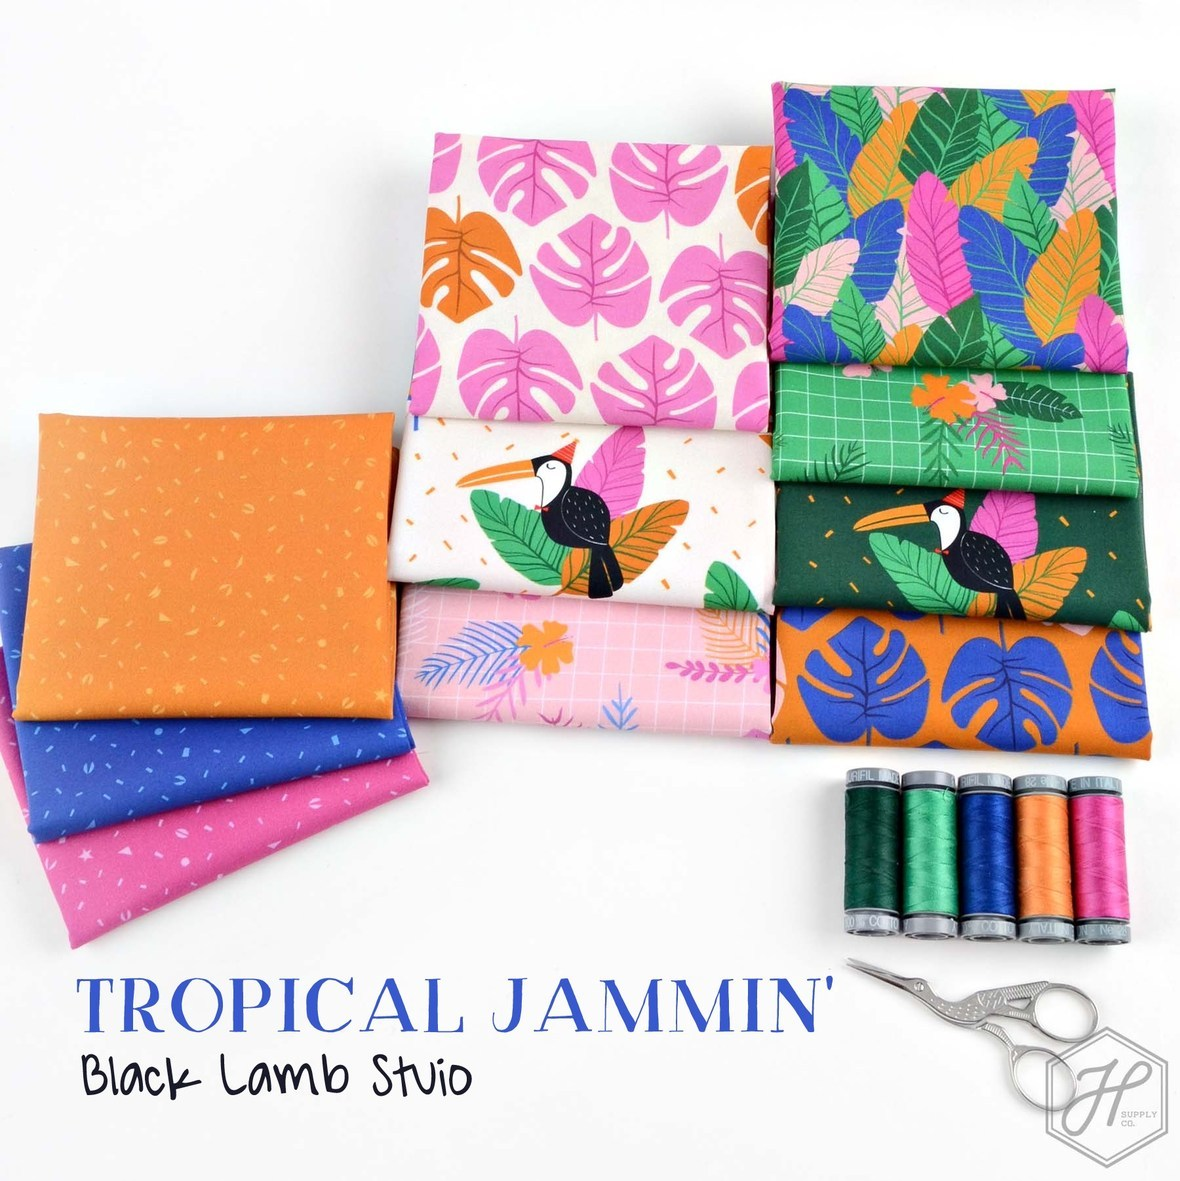 Tropical Jammin Black Lamb Studio Figo Fabric at Hawthorne Supply Co